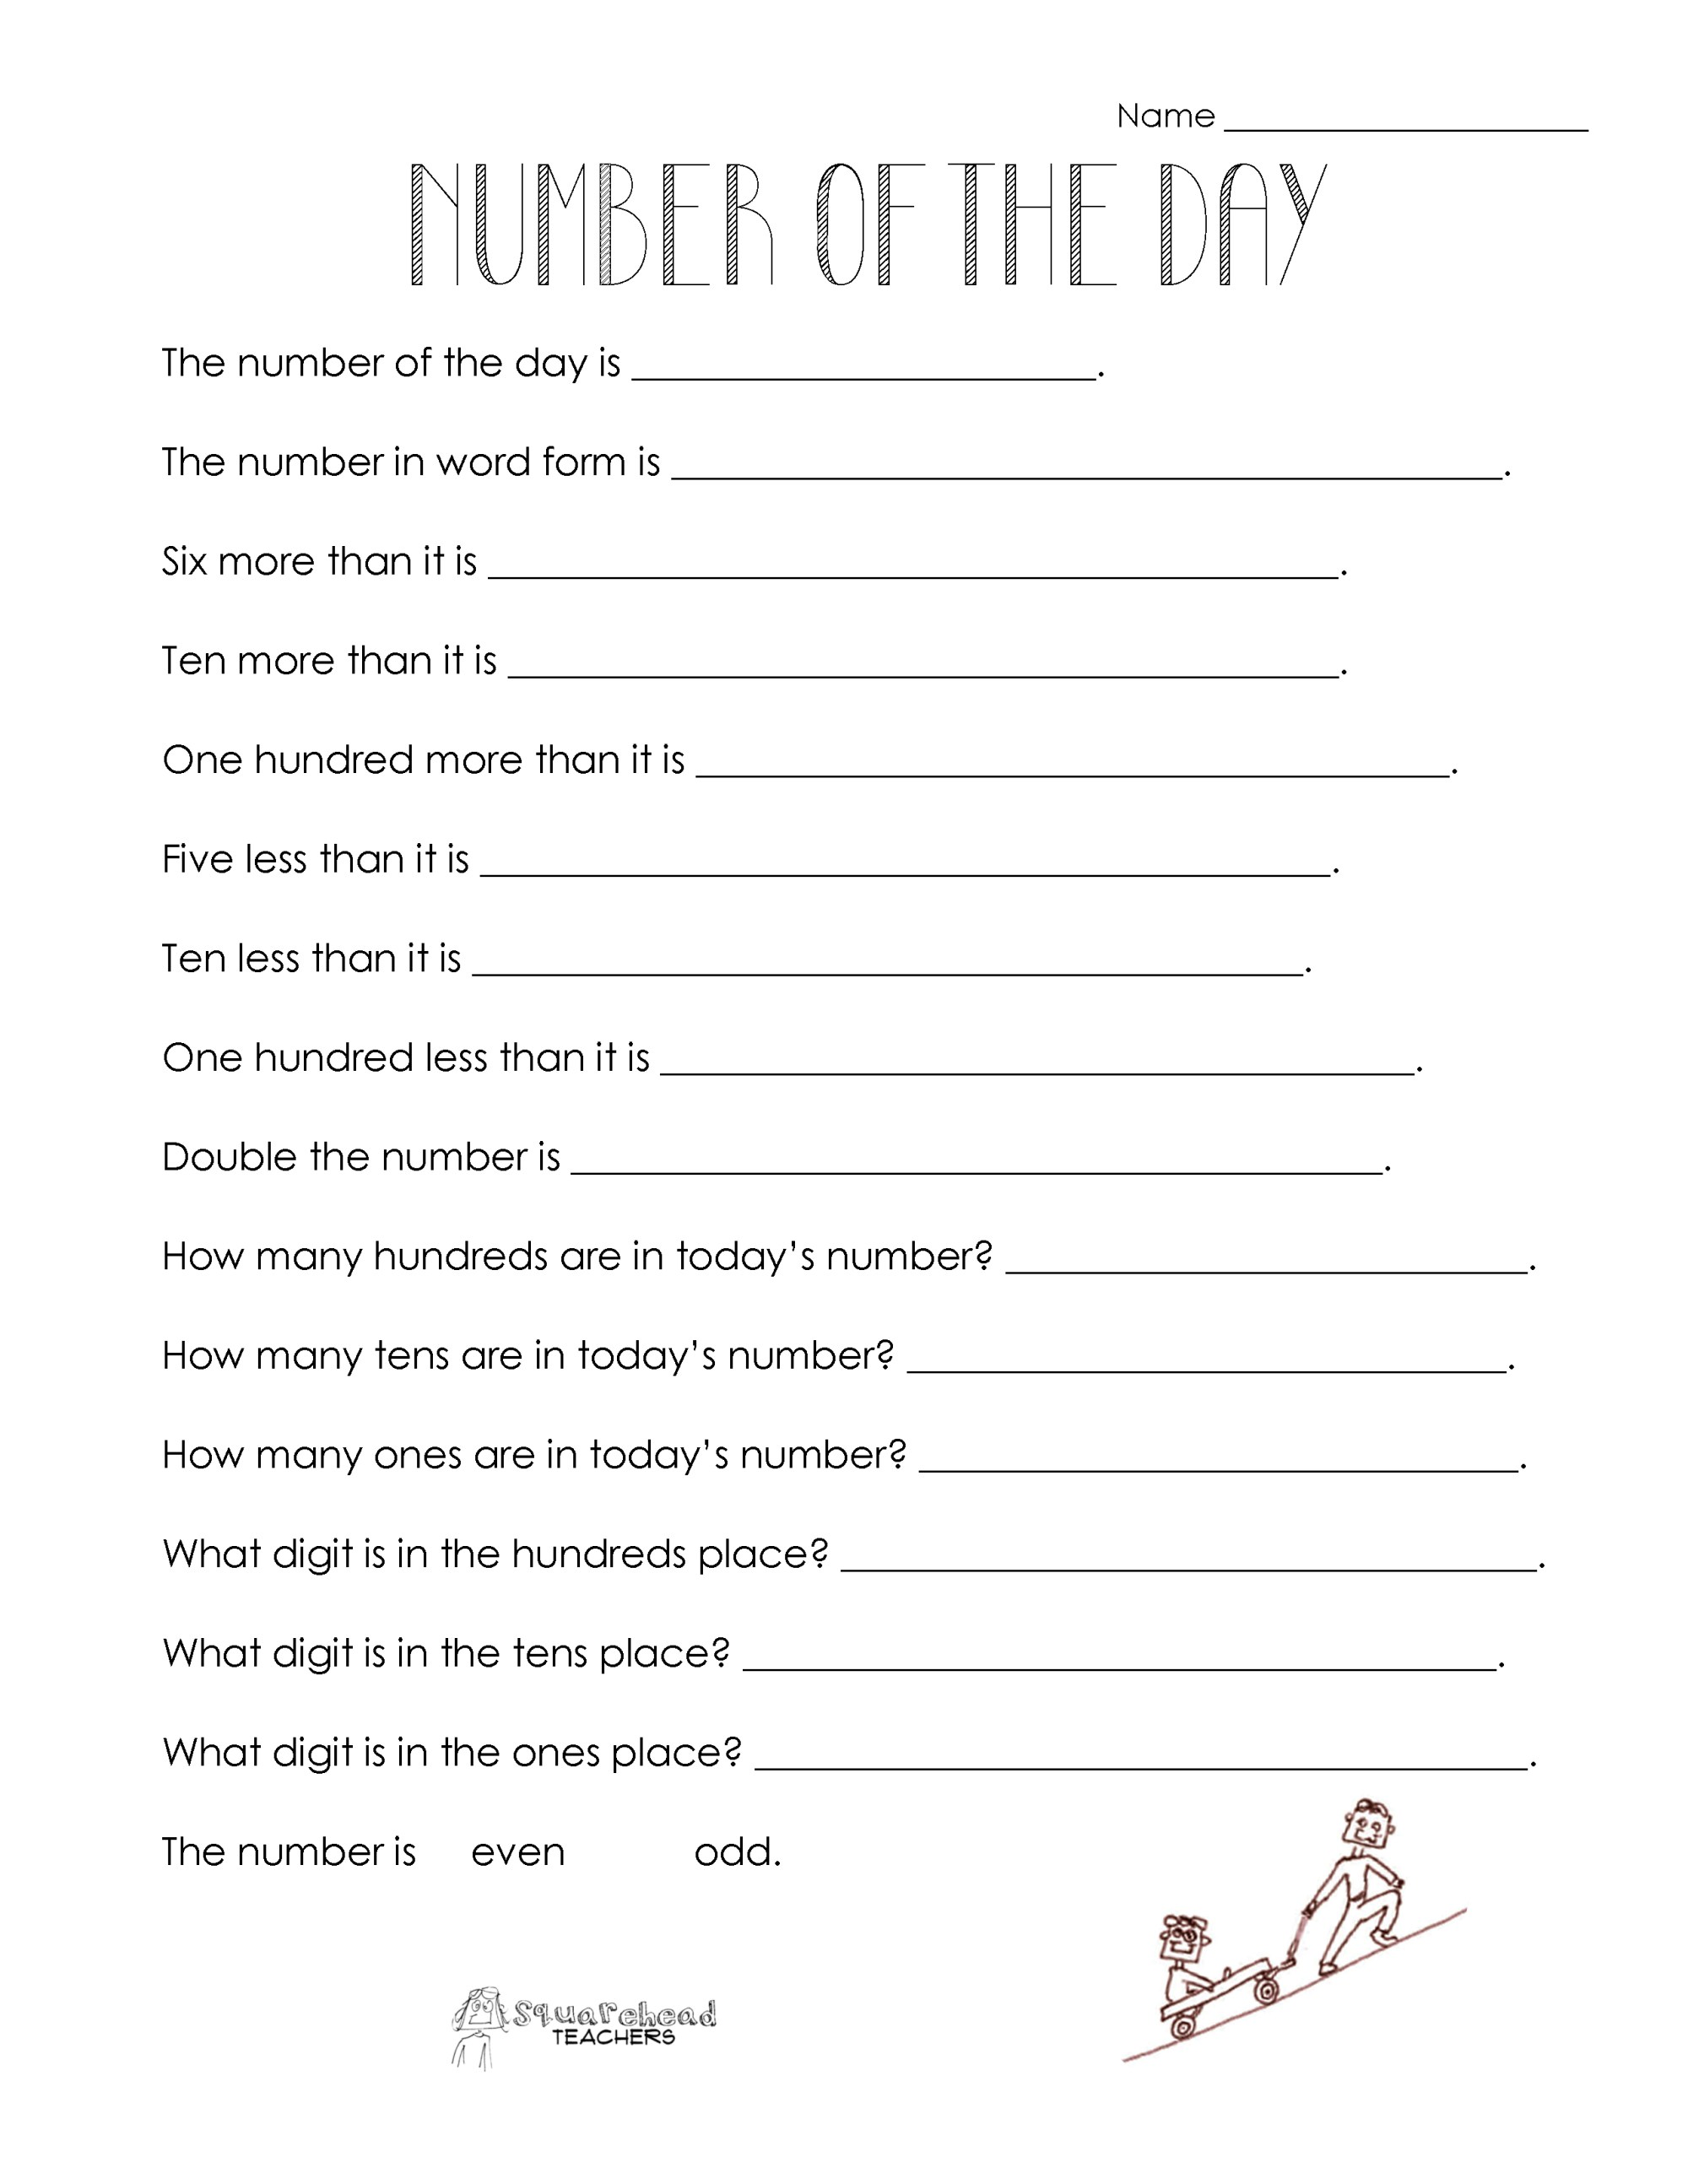 hight resolution of Number of the Day (worksheet collection)   Squarehead Teachers